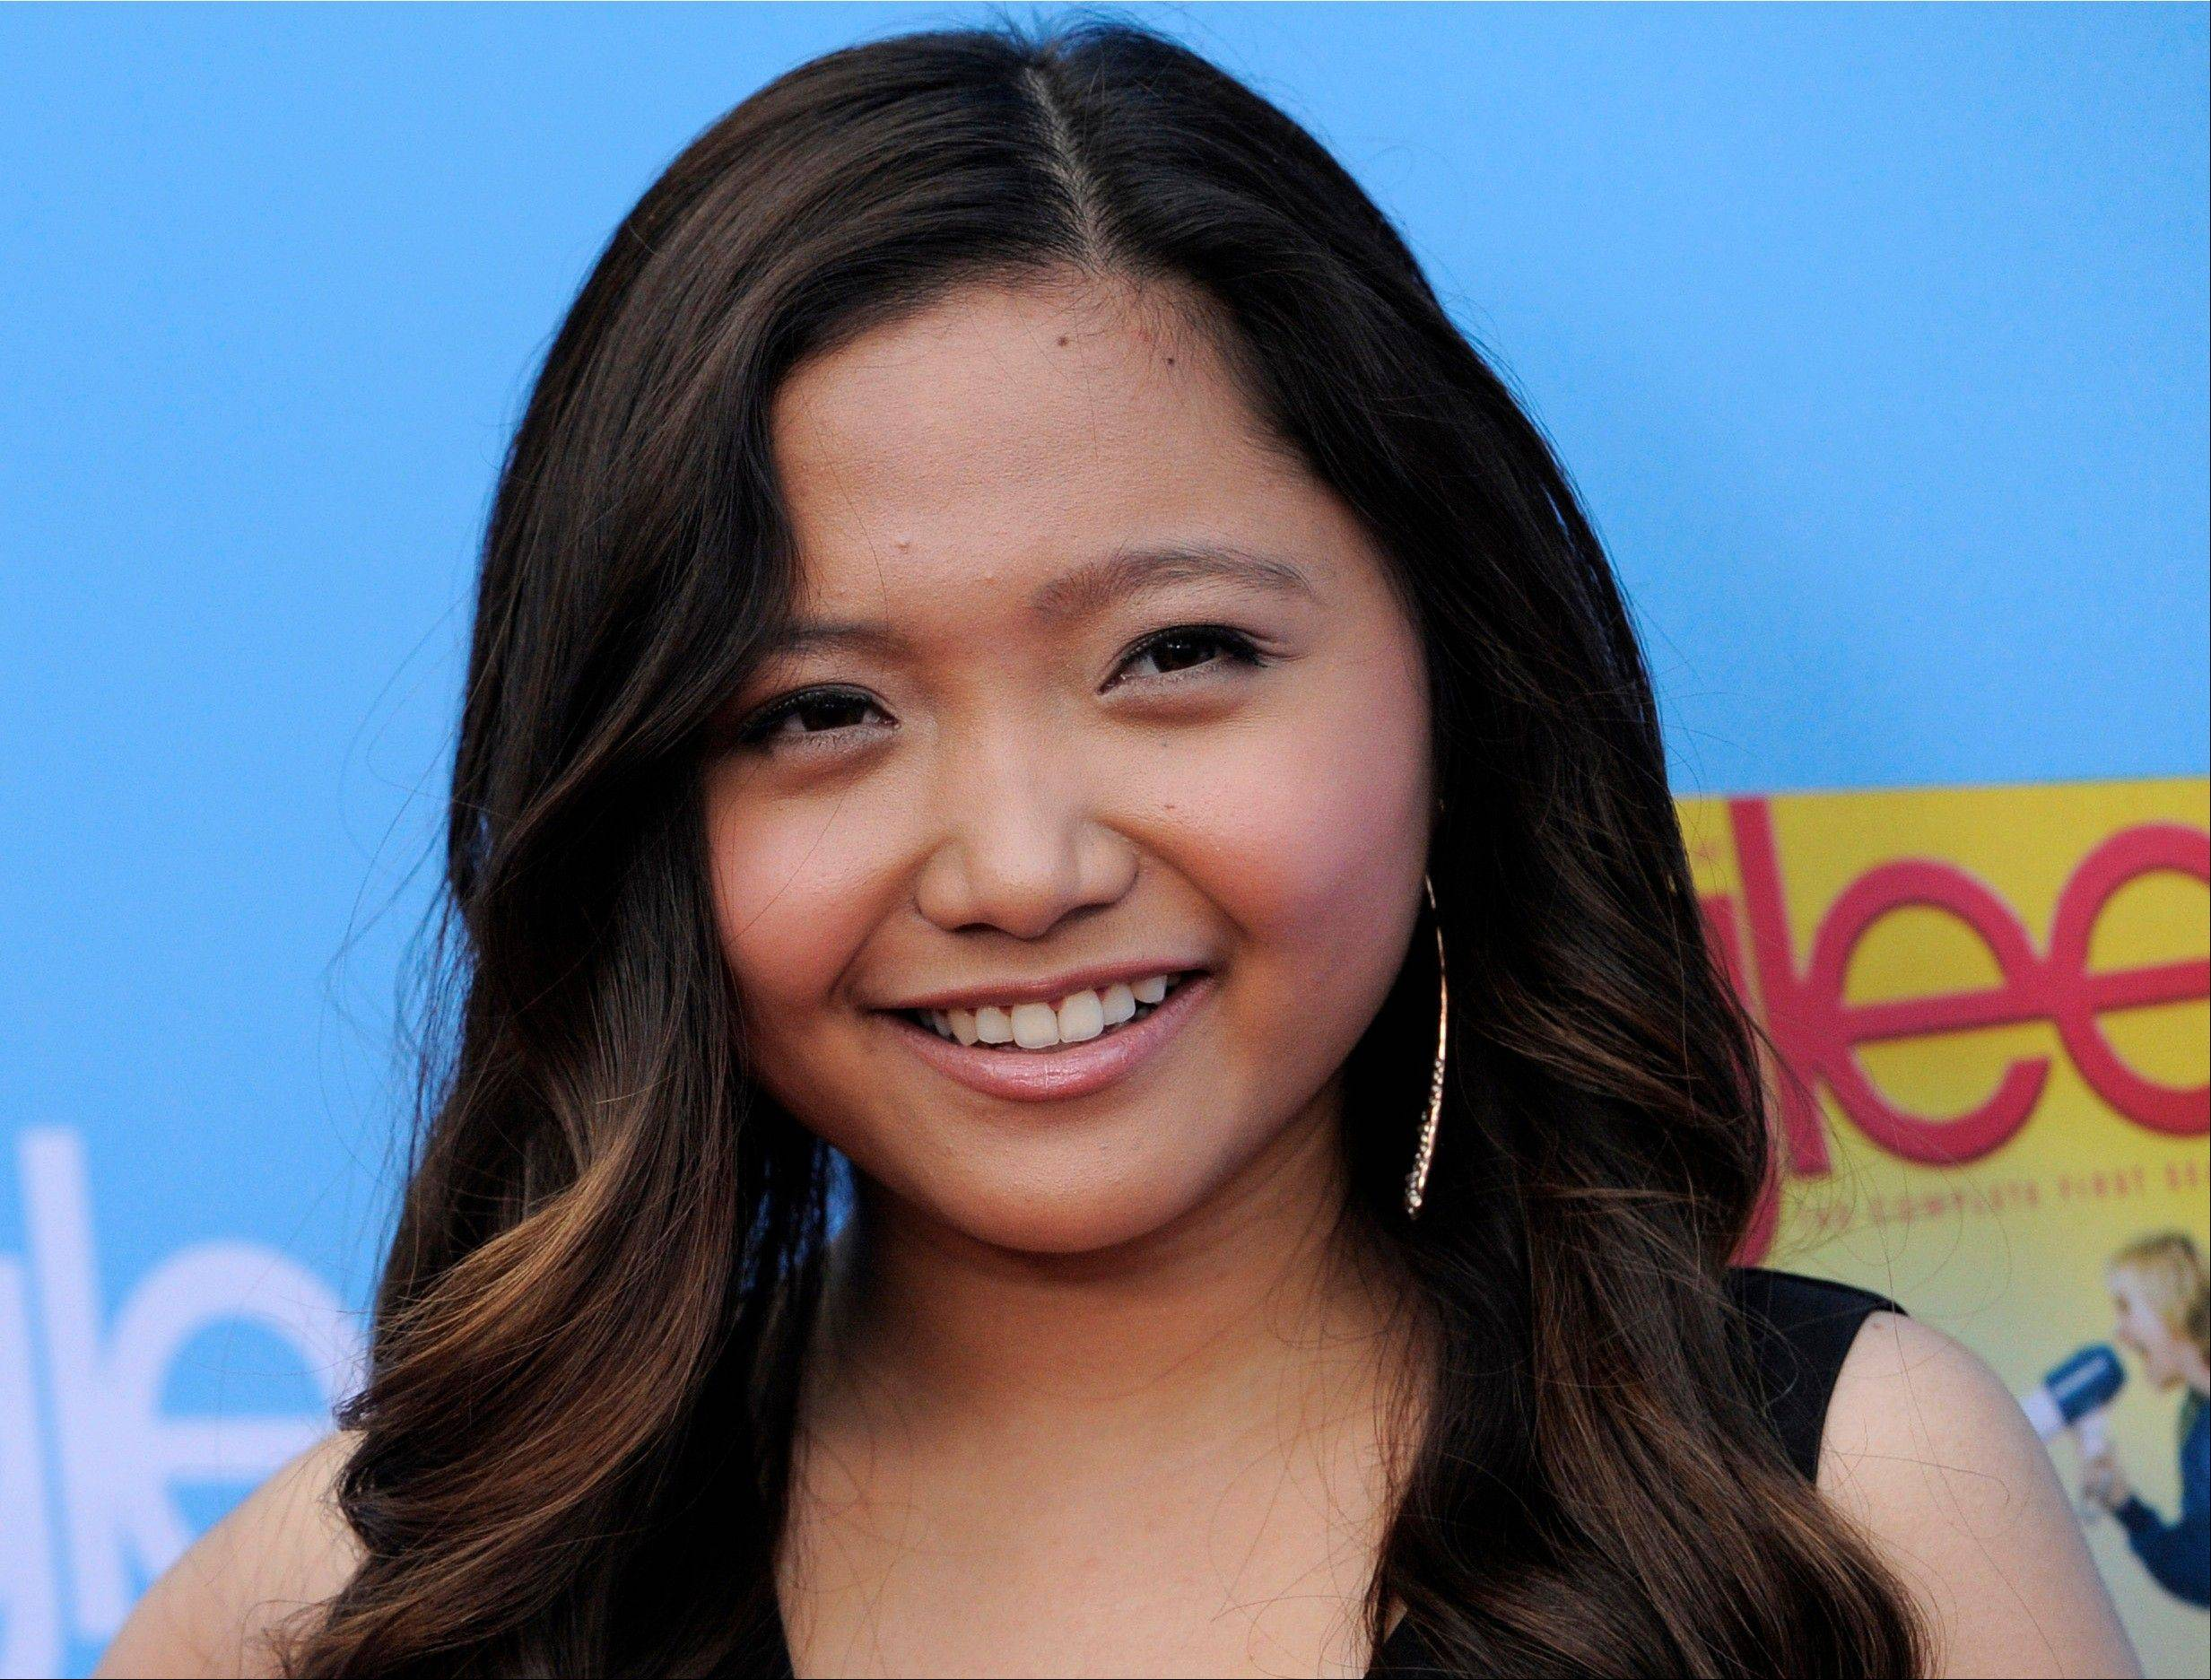 The Filipino singer Charice, who played the role of an exchange student in �Glee,� has come out in an emotional TV interview in which she apologized to her mother and brother.